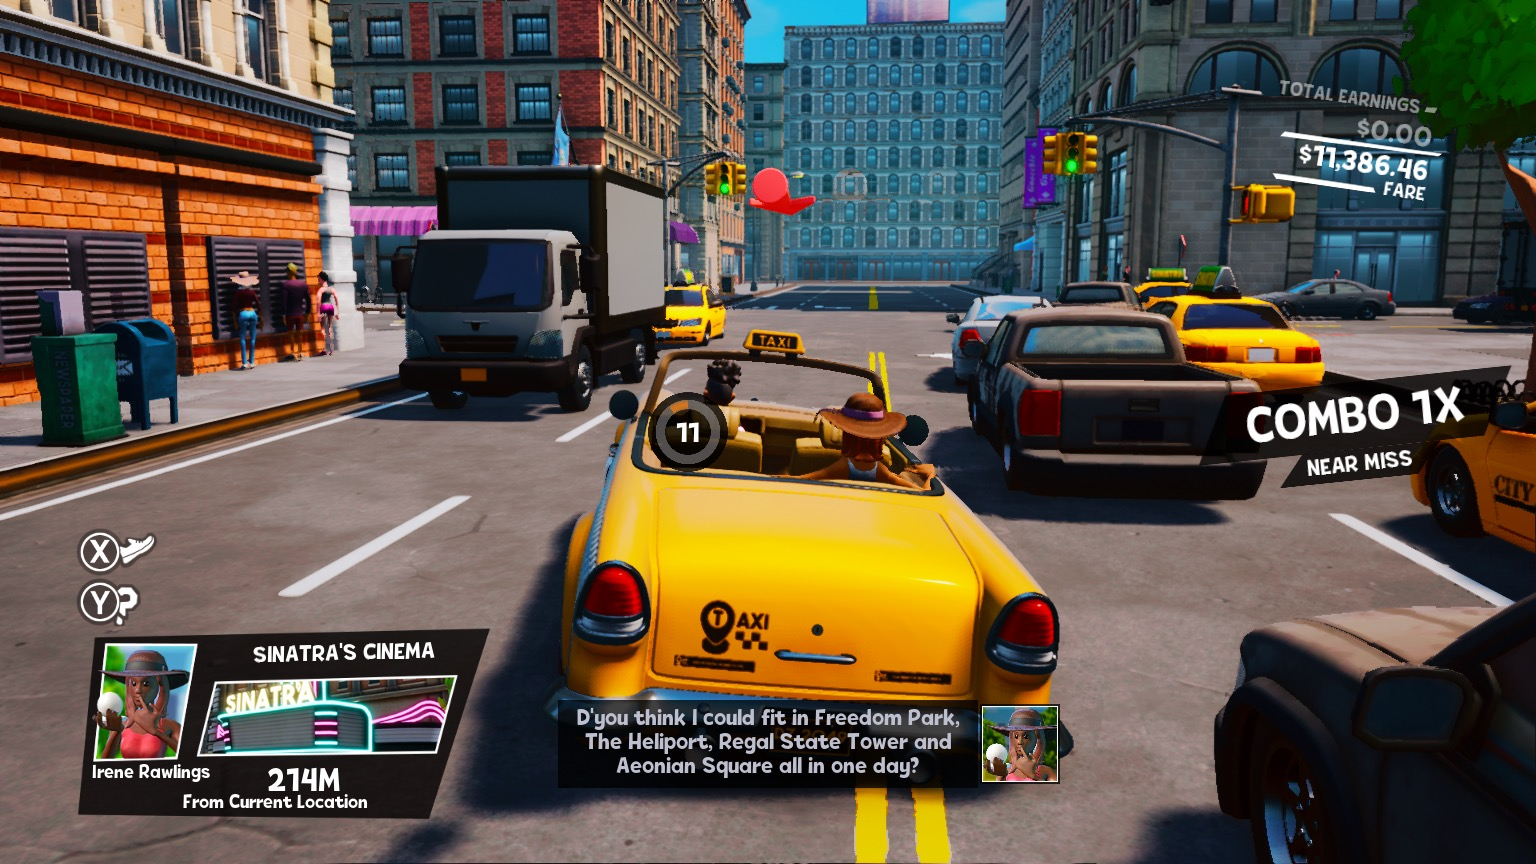 taxi-chaos-brings-back-the-long-lost-taxi-genre-playstation-blog